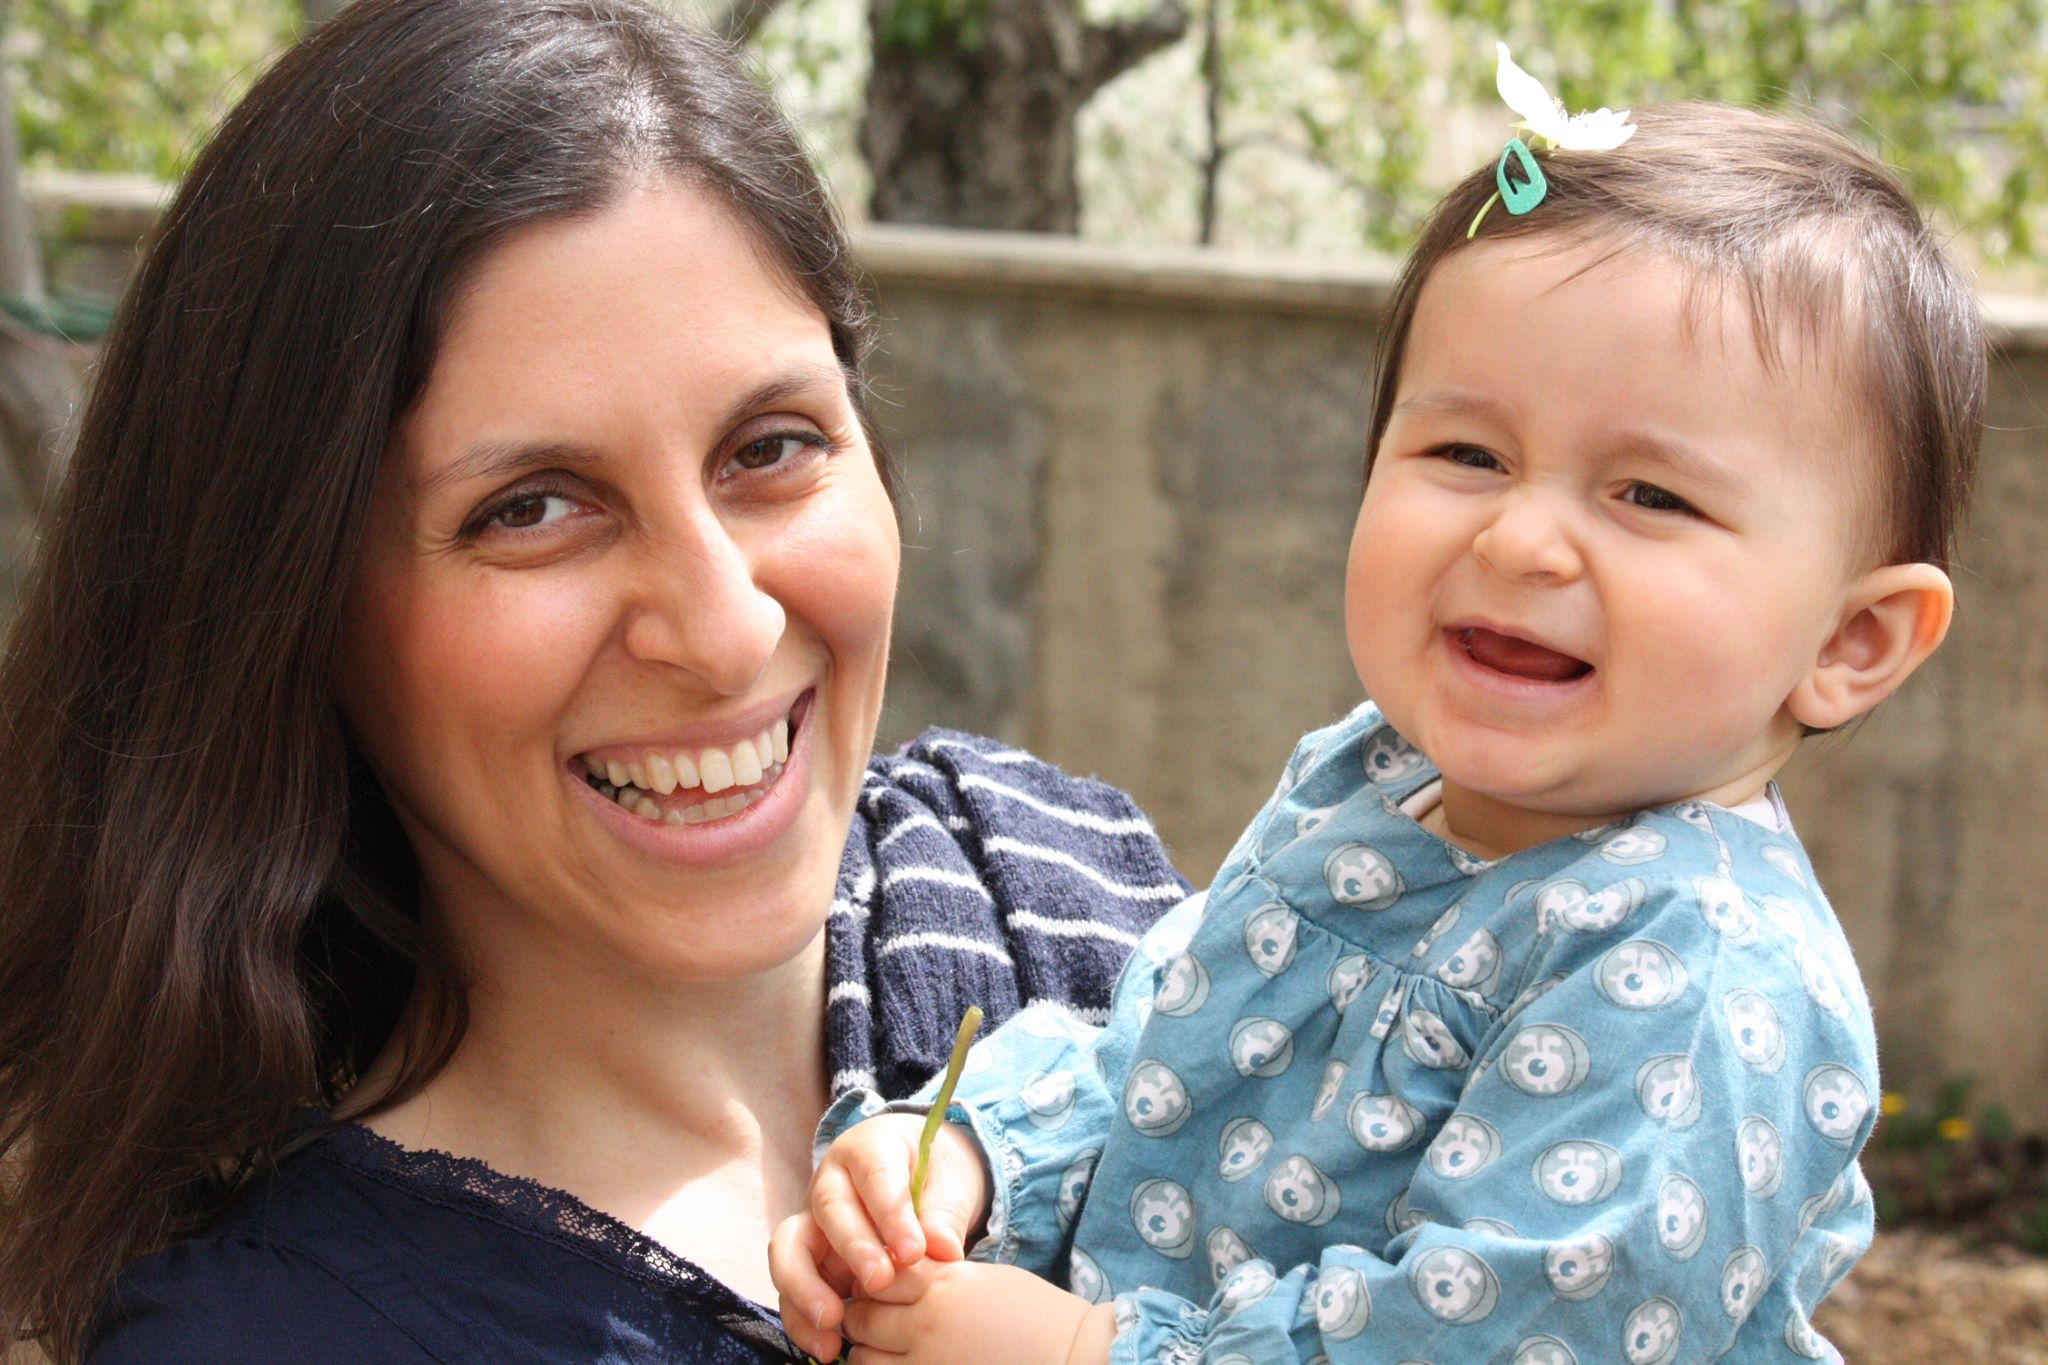 More Fear and Uncertainty for Nazanin Zaghari-Ratcliffe